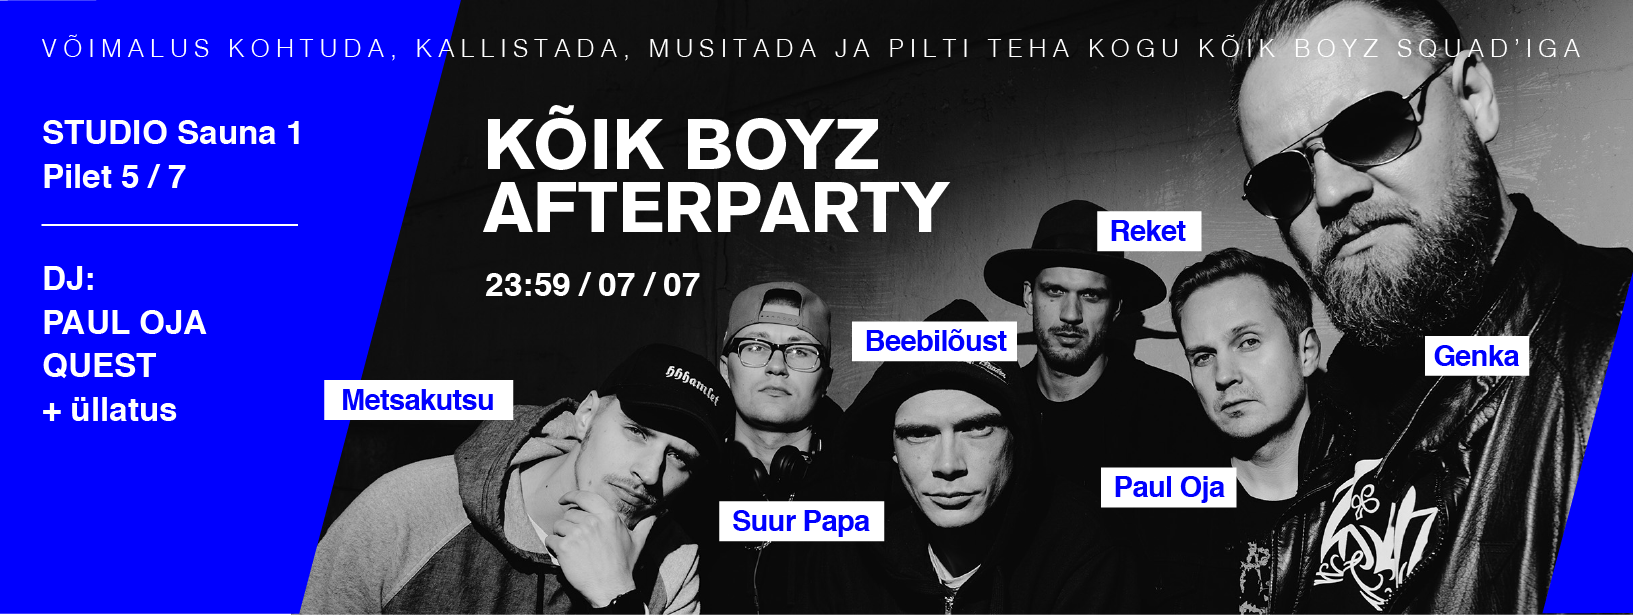 koikboyz_afterparty_FBevent-01